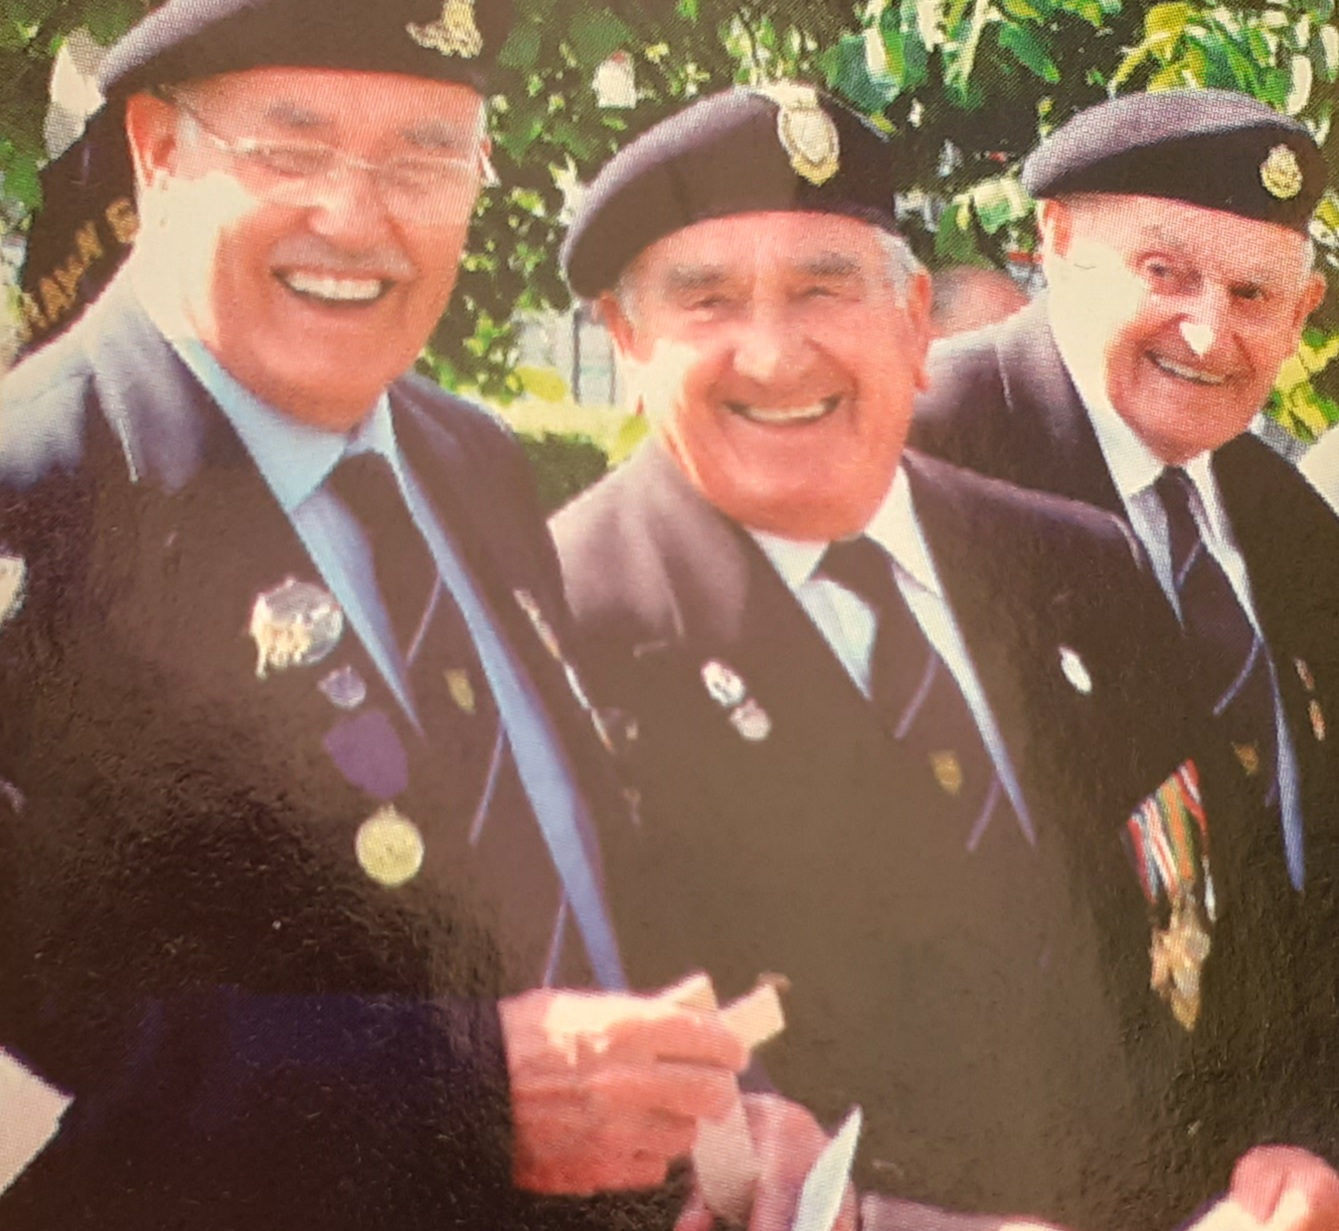 Jim and his friends from Normandy Vets D-Day 2005.